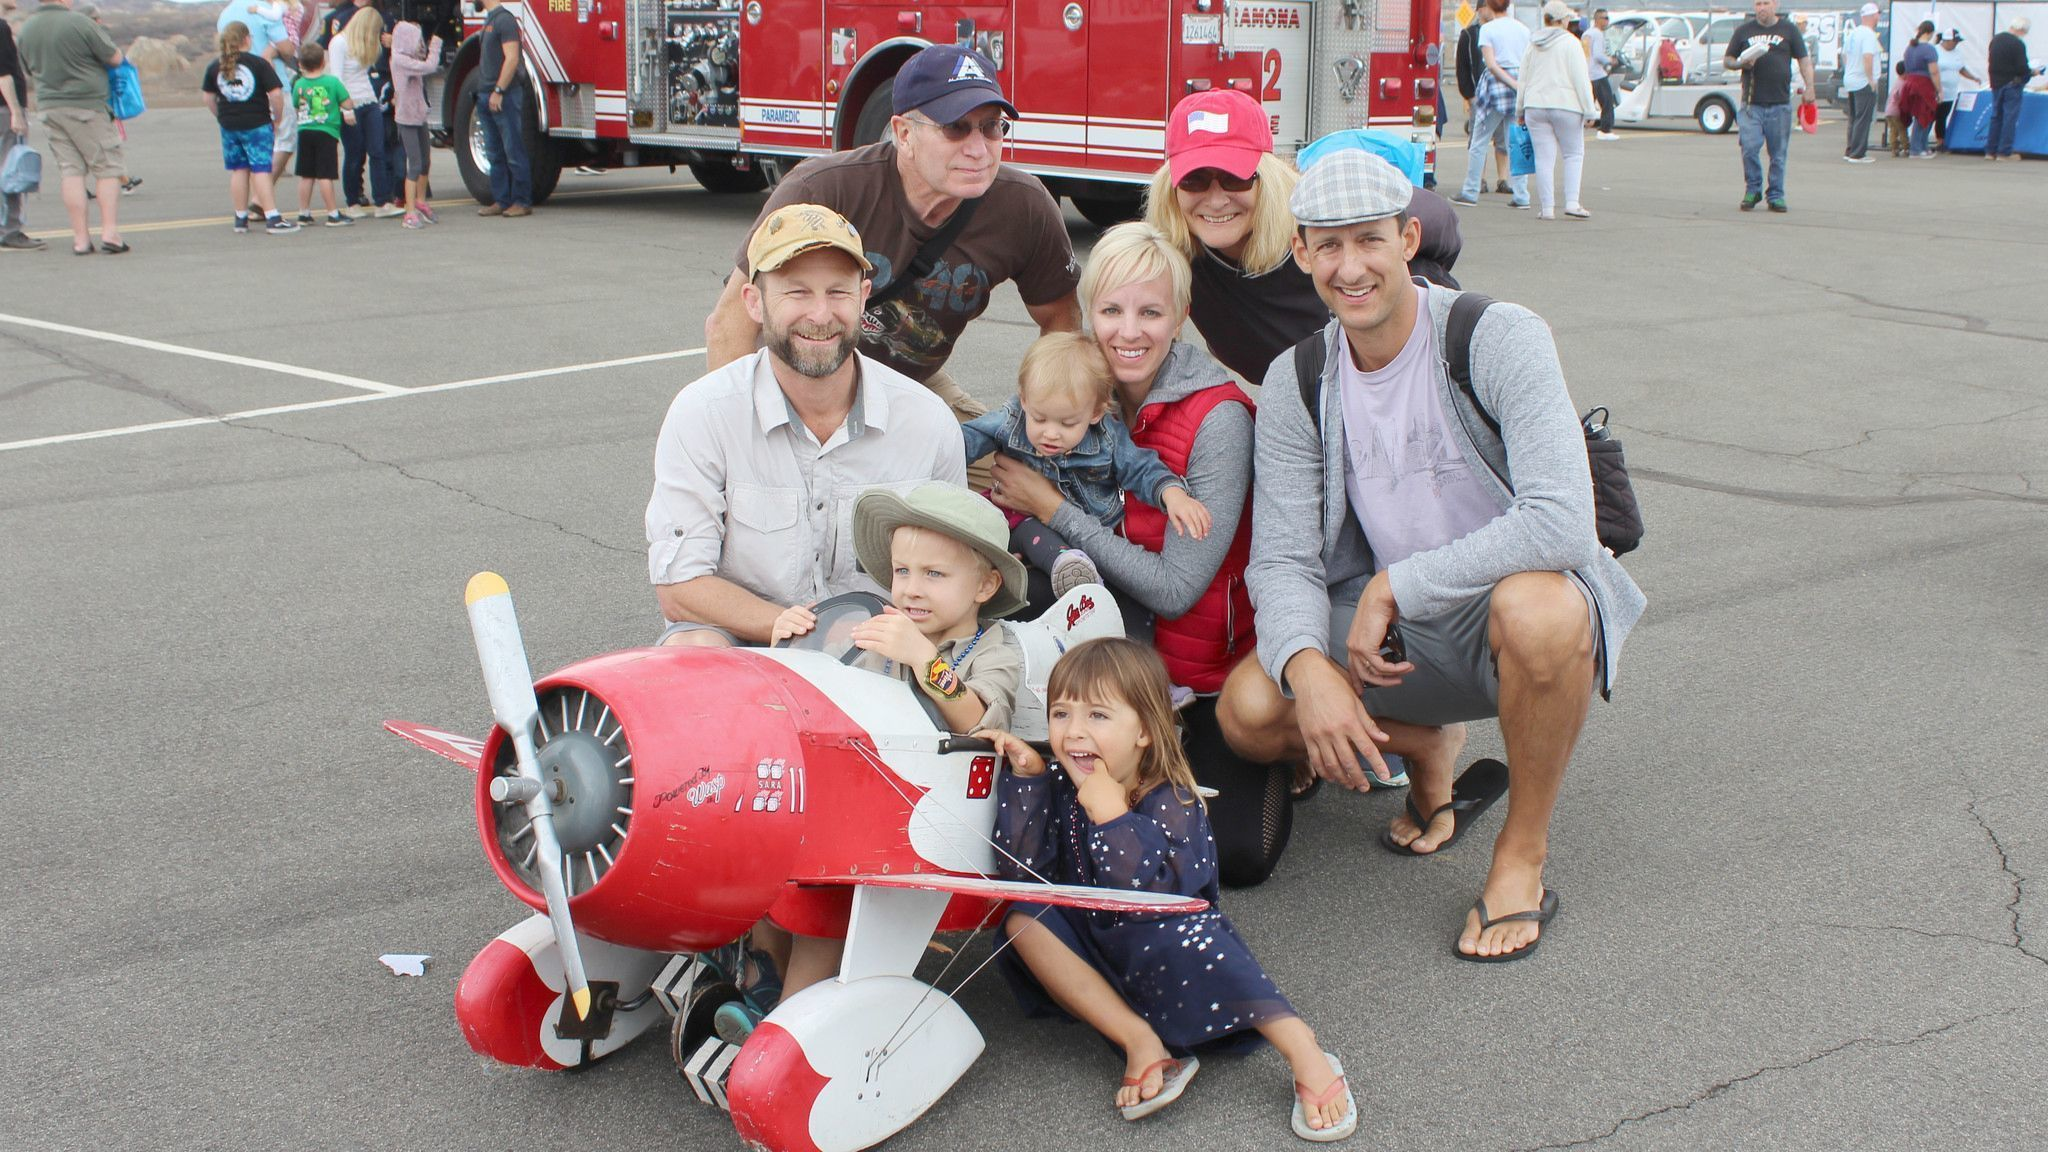 Wyatt Francis steers a miniature airplane with Stella Brodt and baby Annalisa Francis beside him. Onlookers are Jimmy and Nora Francis, John and Marlene Garrett, Christian Brodt.